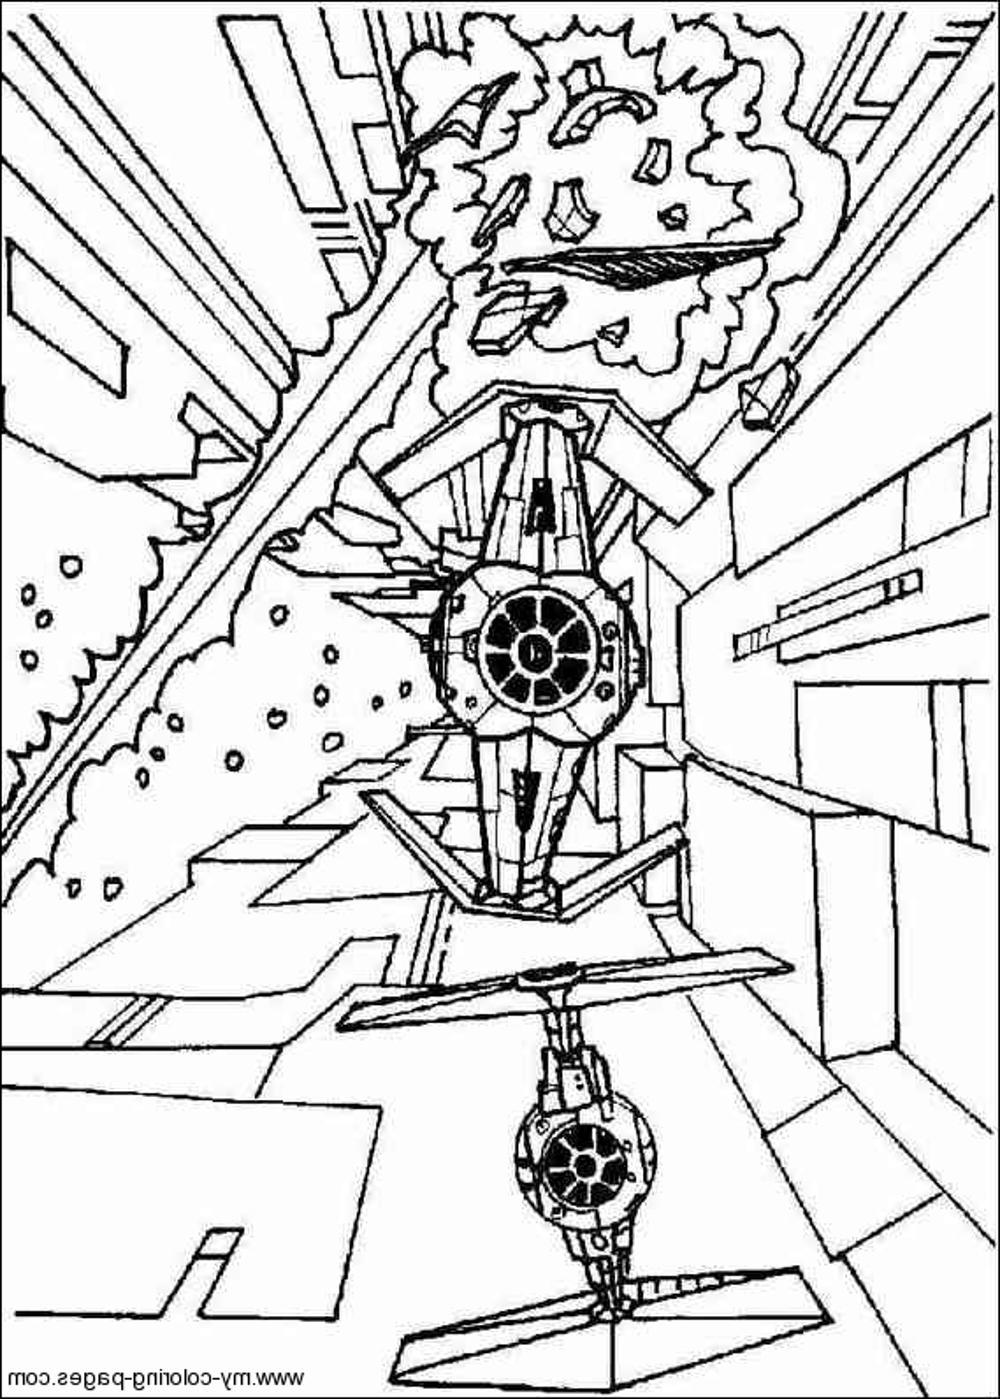 lego star wars pictures to color lego star wars darth vader coloring pages for kids pictures to star color wars lego